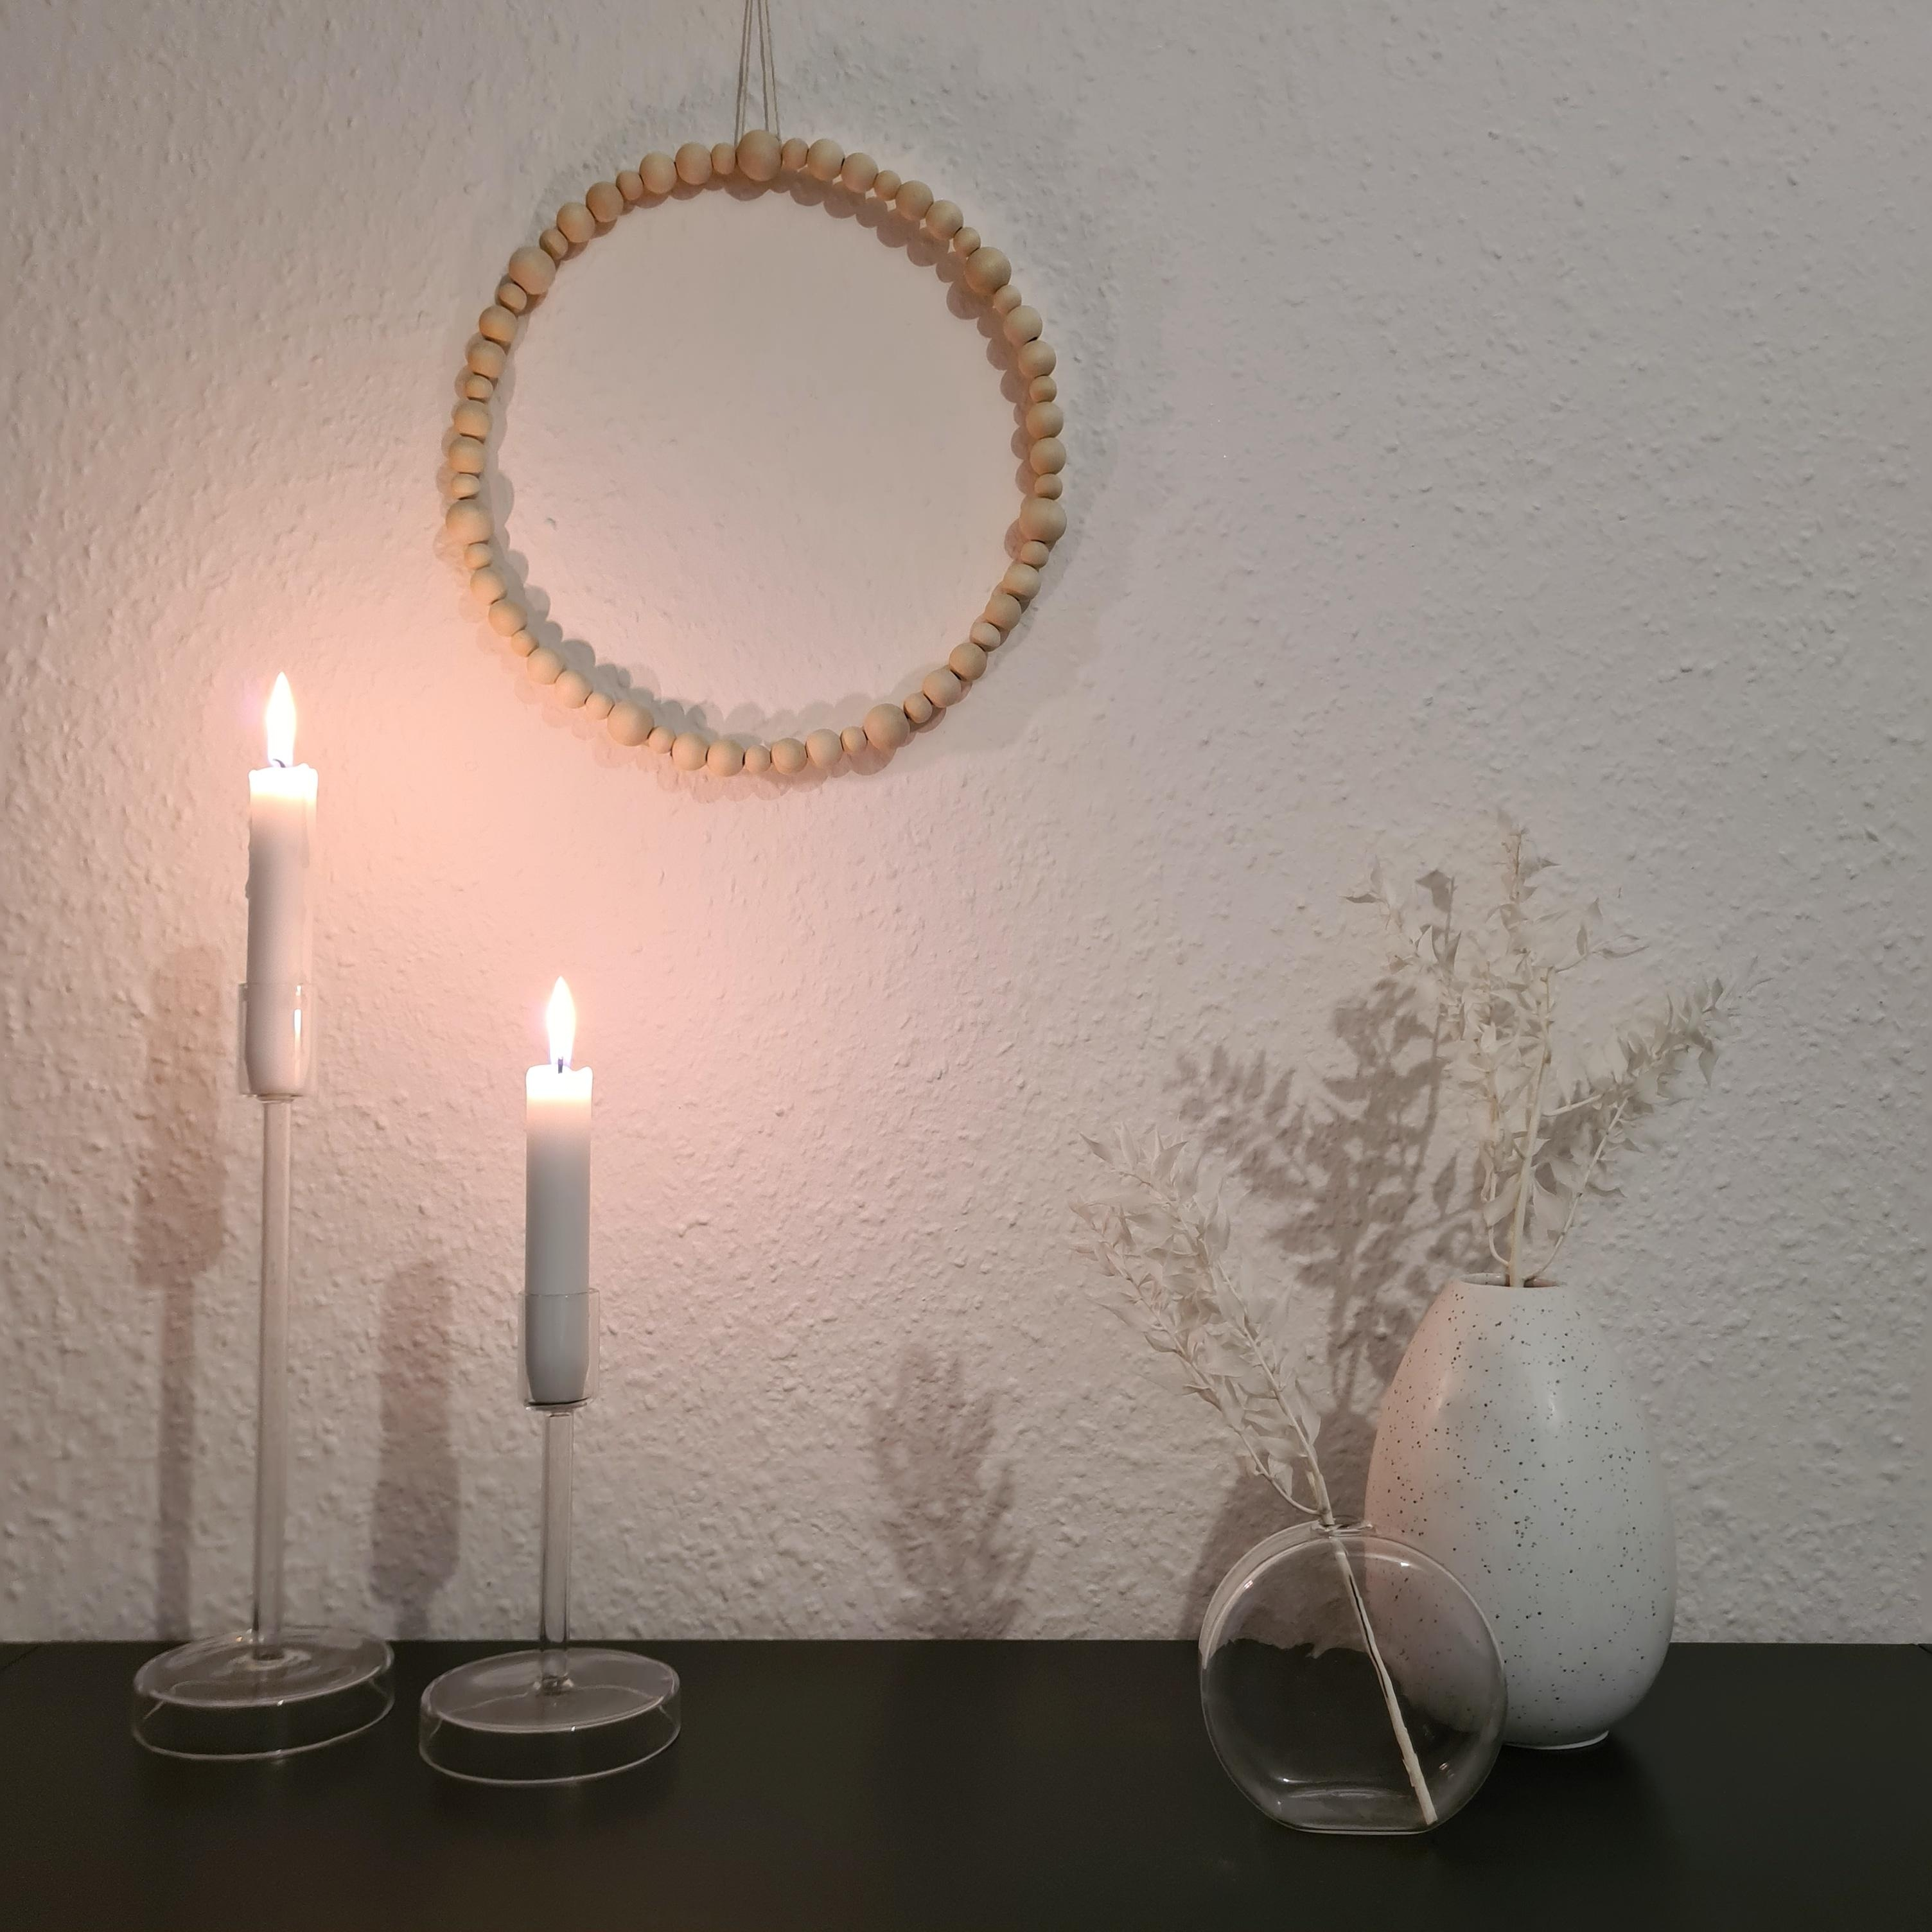 #hygge #scandistyle #whiteliving #holzperlen #diy